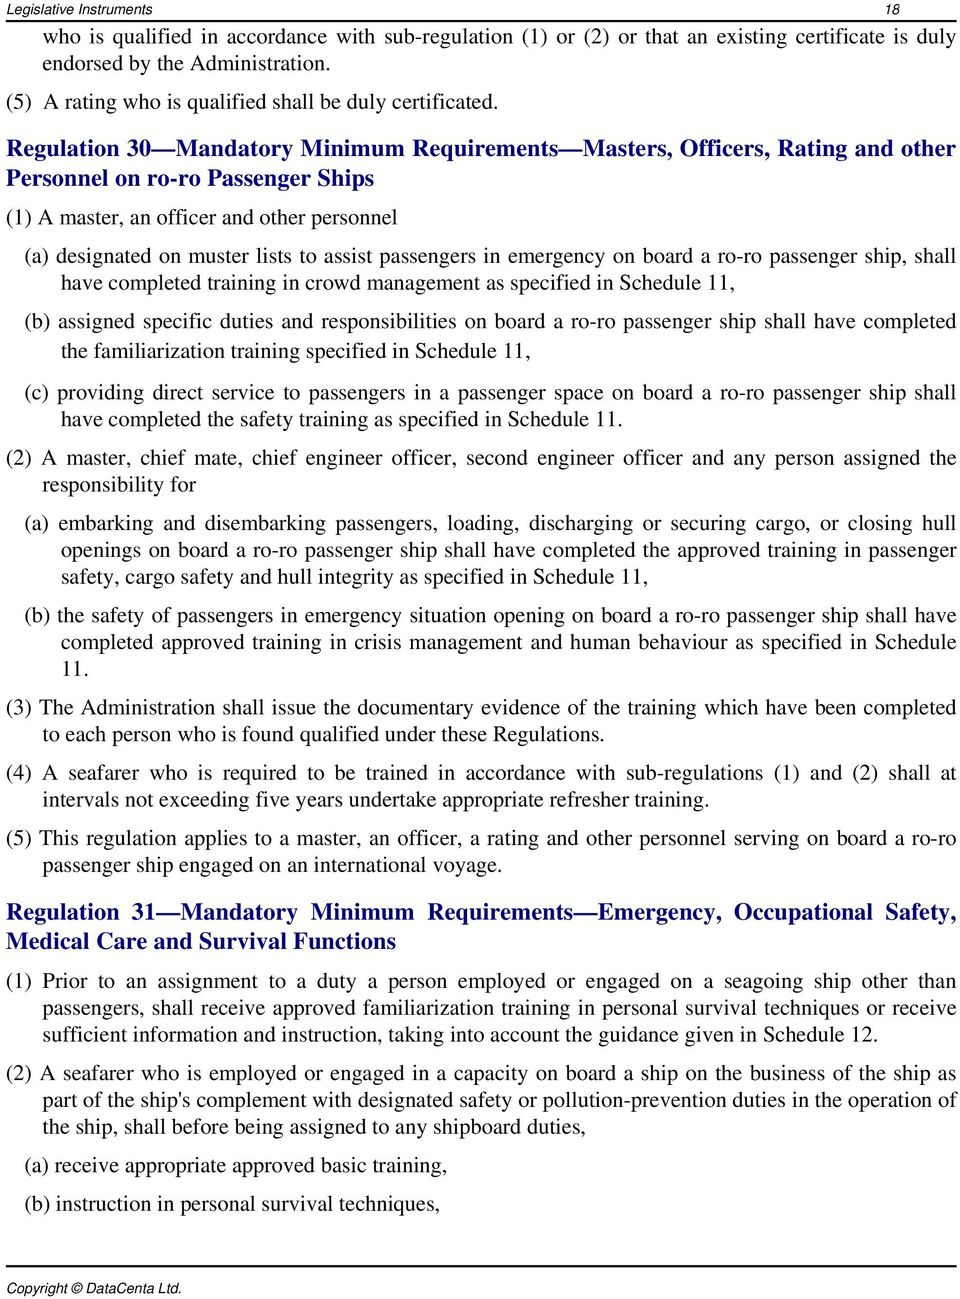 Regulation 30 Mandatory Minimum Requirements Masters, Officers, Rating and other Personnel on ro-ro Passenger Ships (1) A master, an officer and other personnel (a) designated on muster lists to